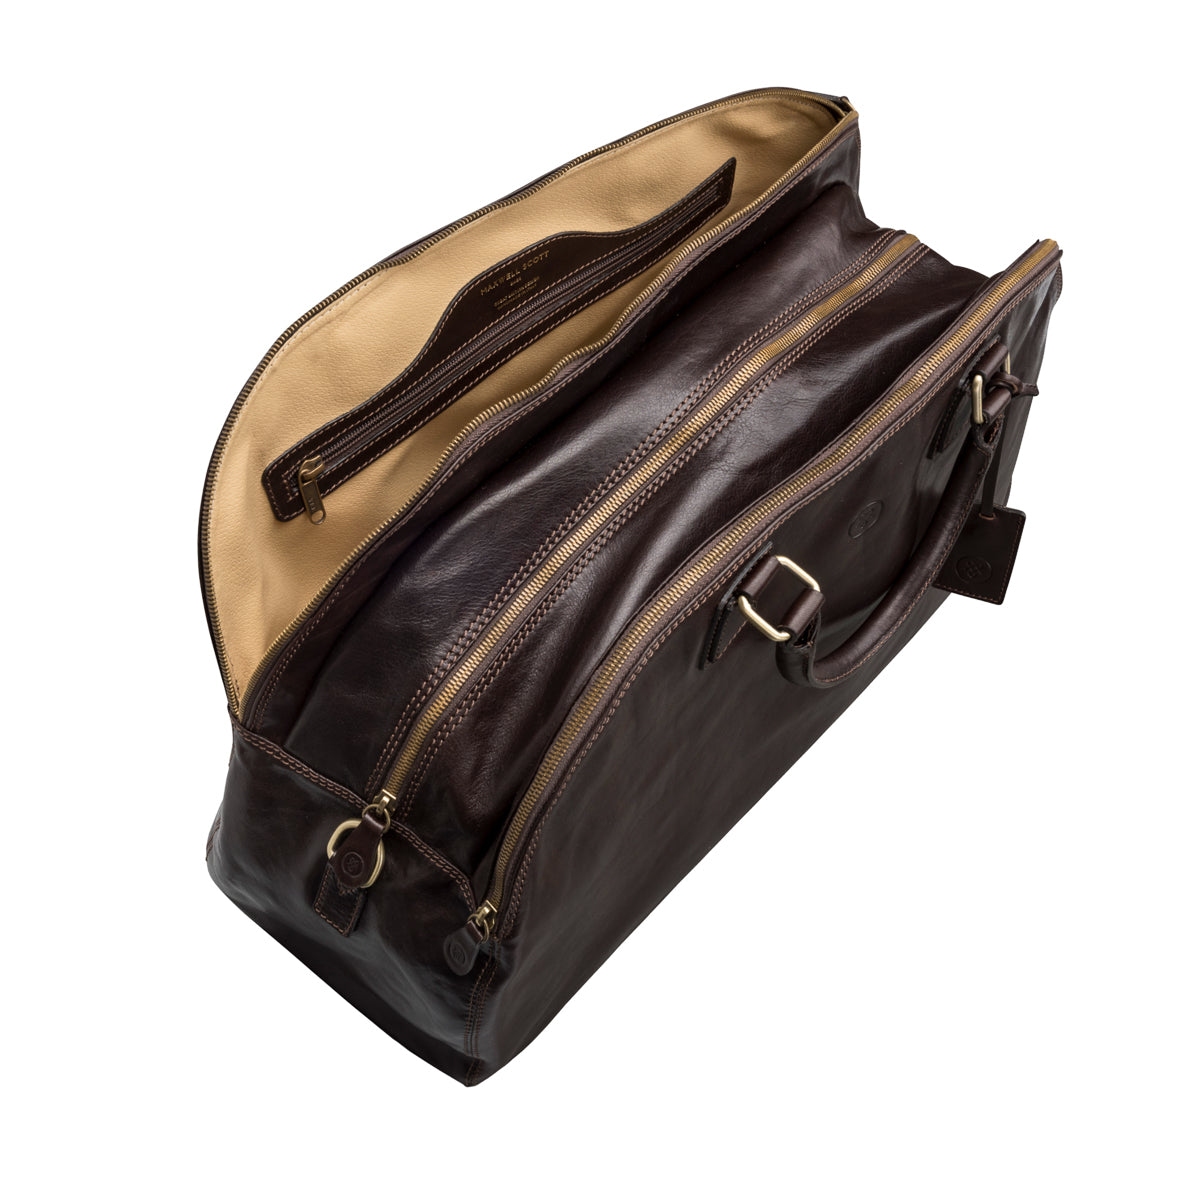 Image 7 of the 'Liliana' Dark Chocolate Veg-Tanned Leather Holdall